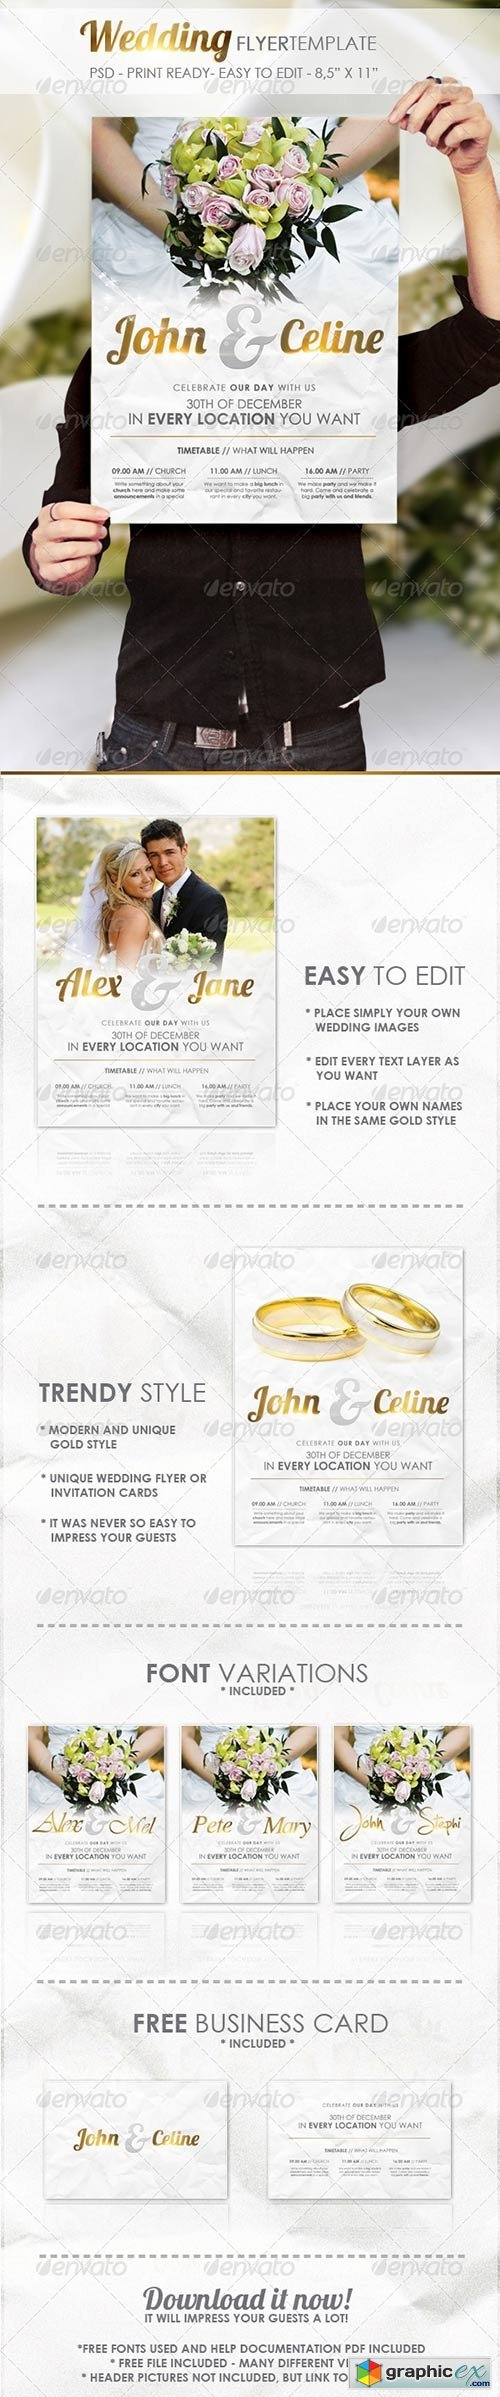 Wedding Flyer Template Free Download Vector Stock Image